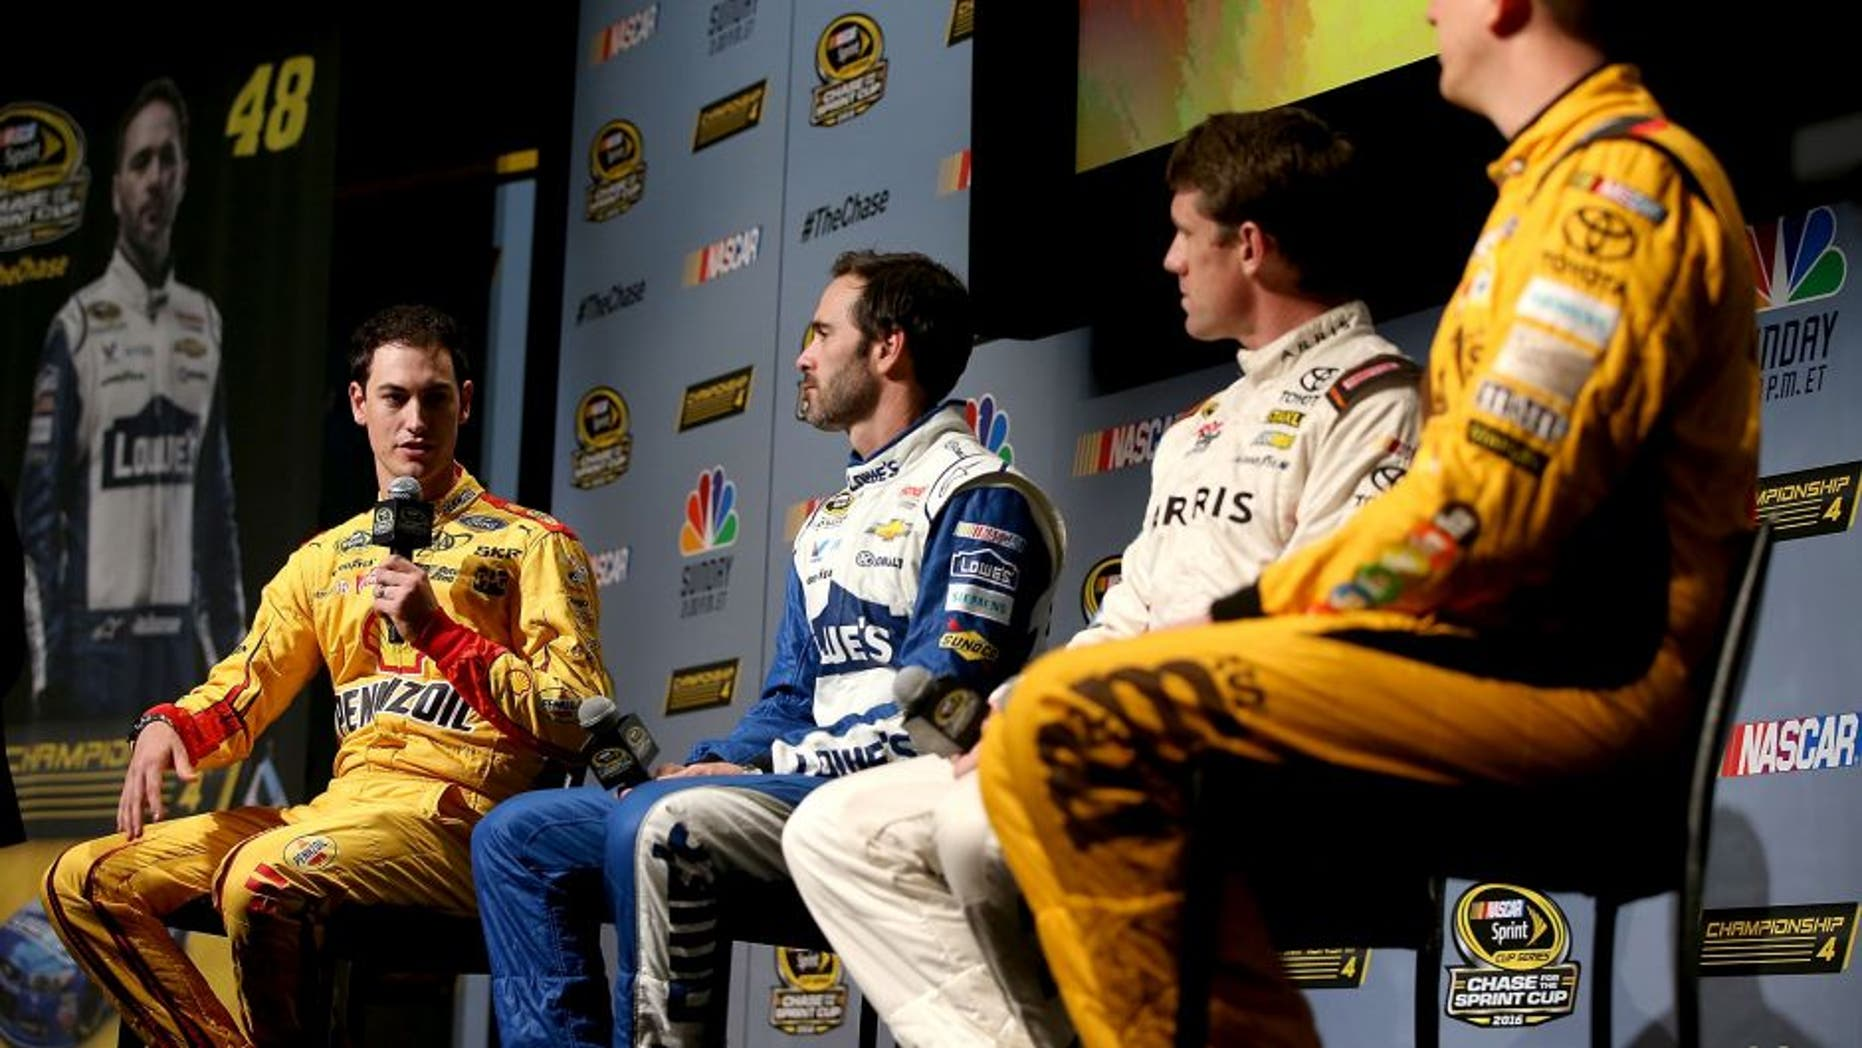 MIAMI BEACH, FL - NOVEMBER 17: (L-R) Joey Logano, driver of the #22 Shell Pennzoil Ford, Jimmie Johnson, driver of the #48 Lowes Chevrolet, Carl Edwards, driver of the #19 Arris Surfboard Toyota, and Kyle Busch, driver of the (18) M&M's Core Toyota, talk to the media during media day for the NASCAR Sprint Cup Series Championship at the Loews Hotel on November 17, 2016 in Miami Beach, Florida. (Photo by Sean Gardner/NASCAR via Getty Images)